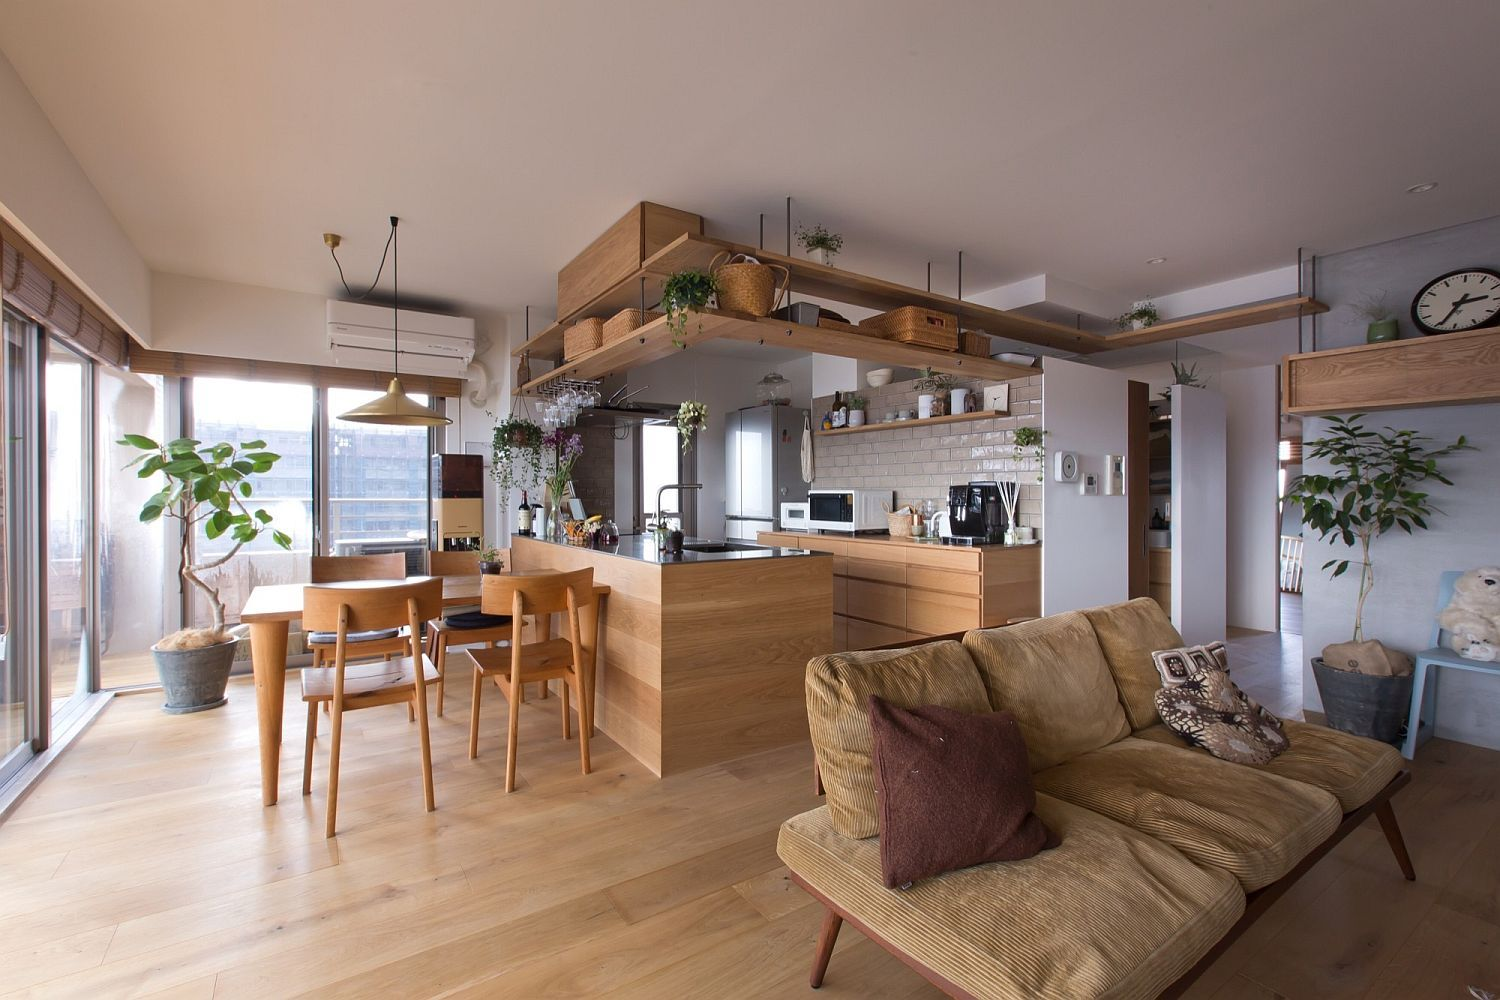 Uncategorized Cat Walkway In House wooden planks top shelves and open cabinets provide walkways for the cats